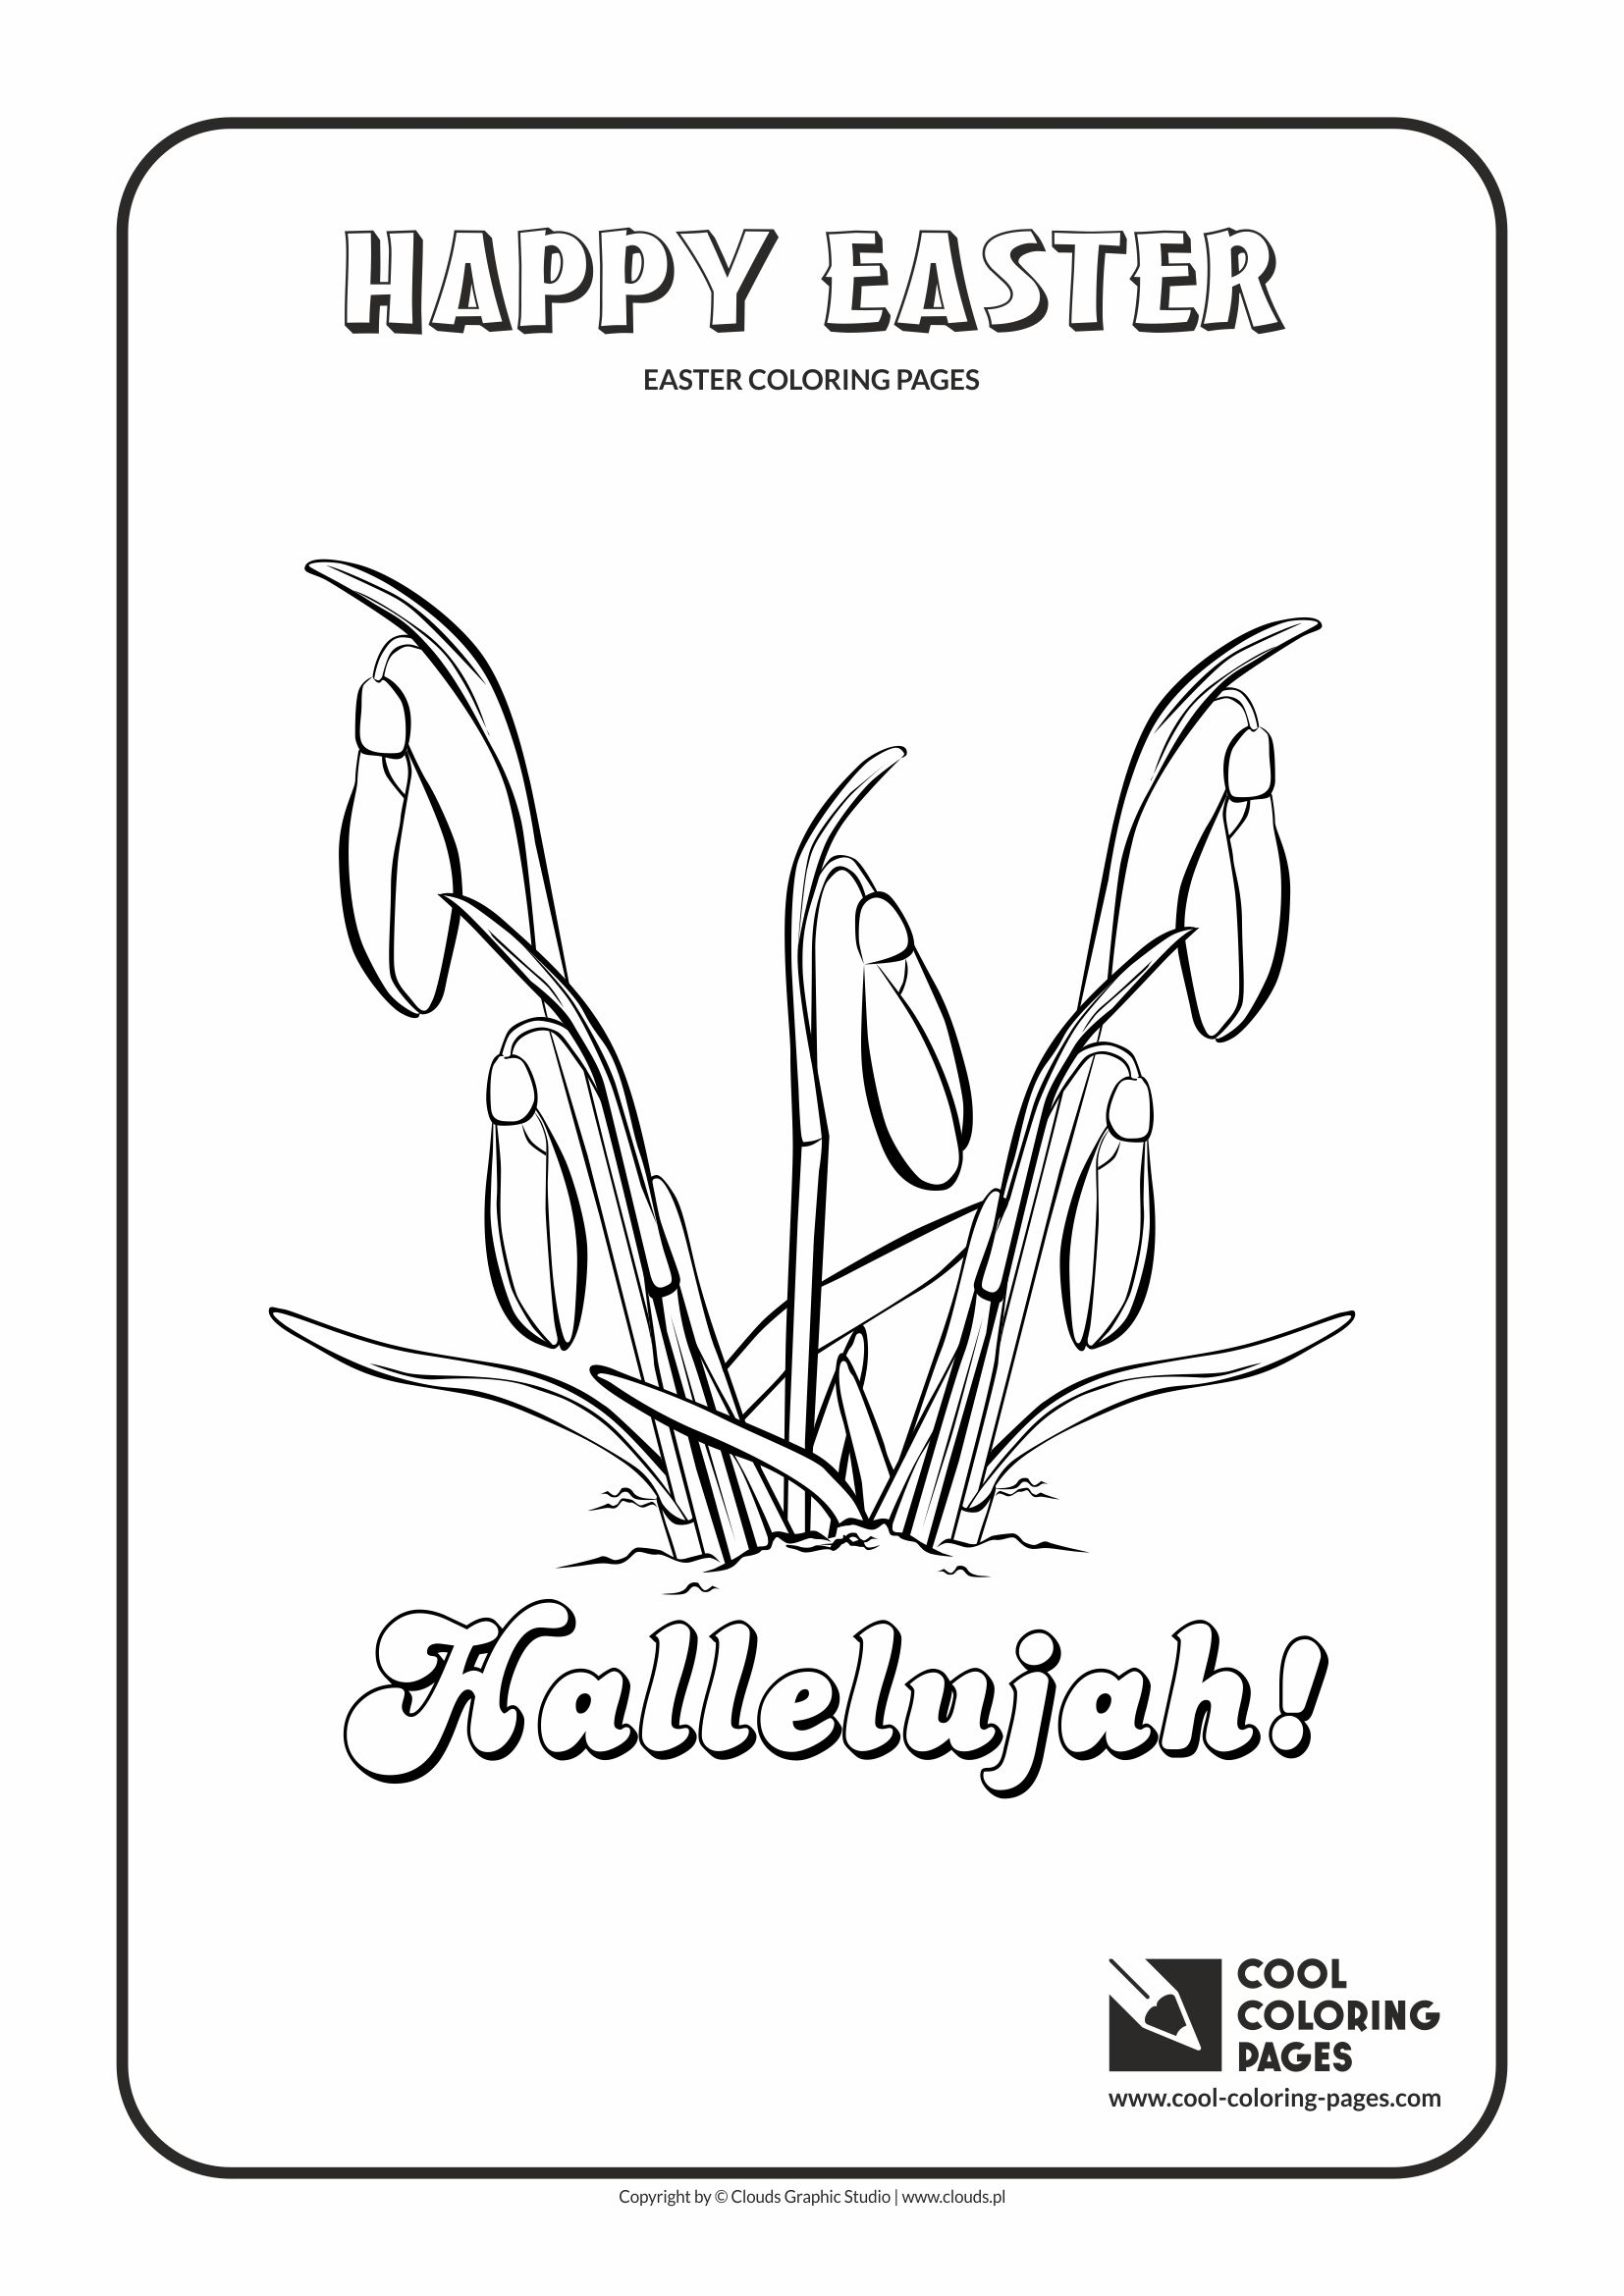 Cool Coloring Pages - Holidays / Easter flowers / Coloring page with Easter flowers